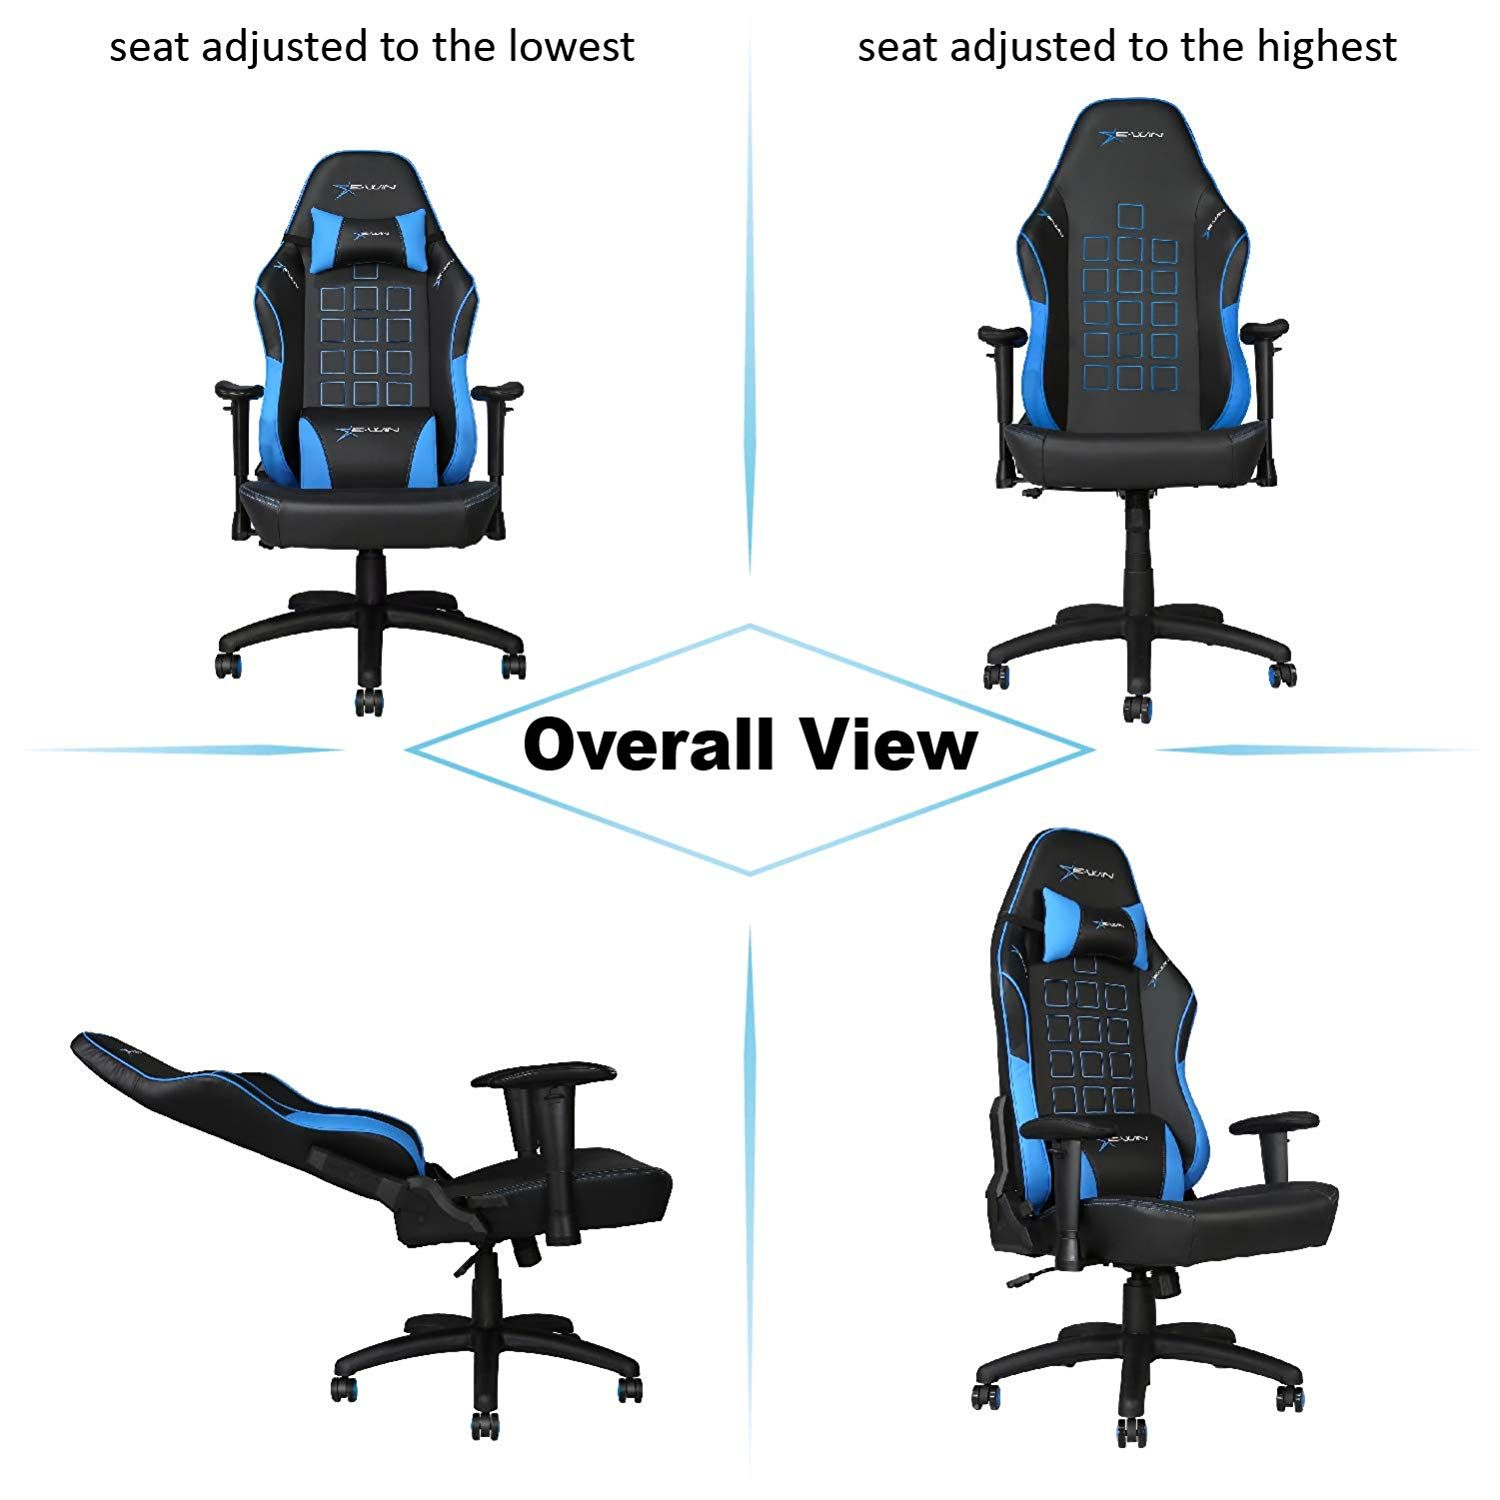 Best Budget Gaming Chairs For Comfortable Gaming Sessions